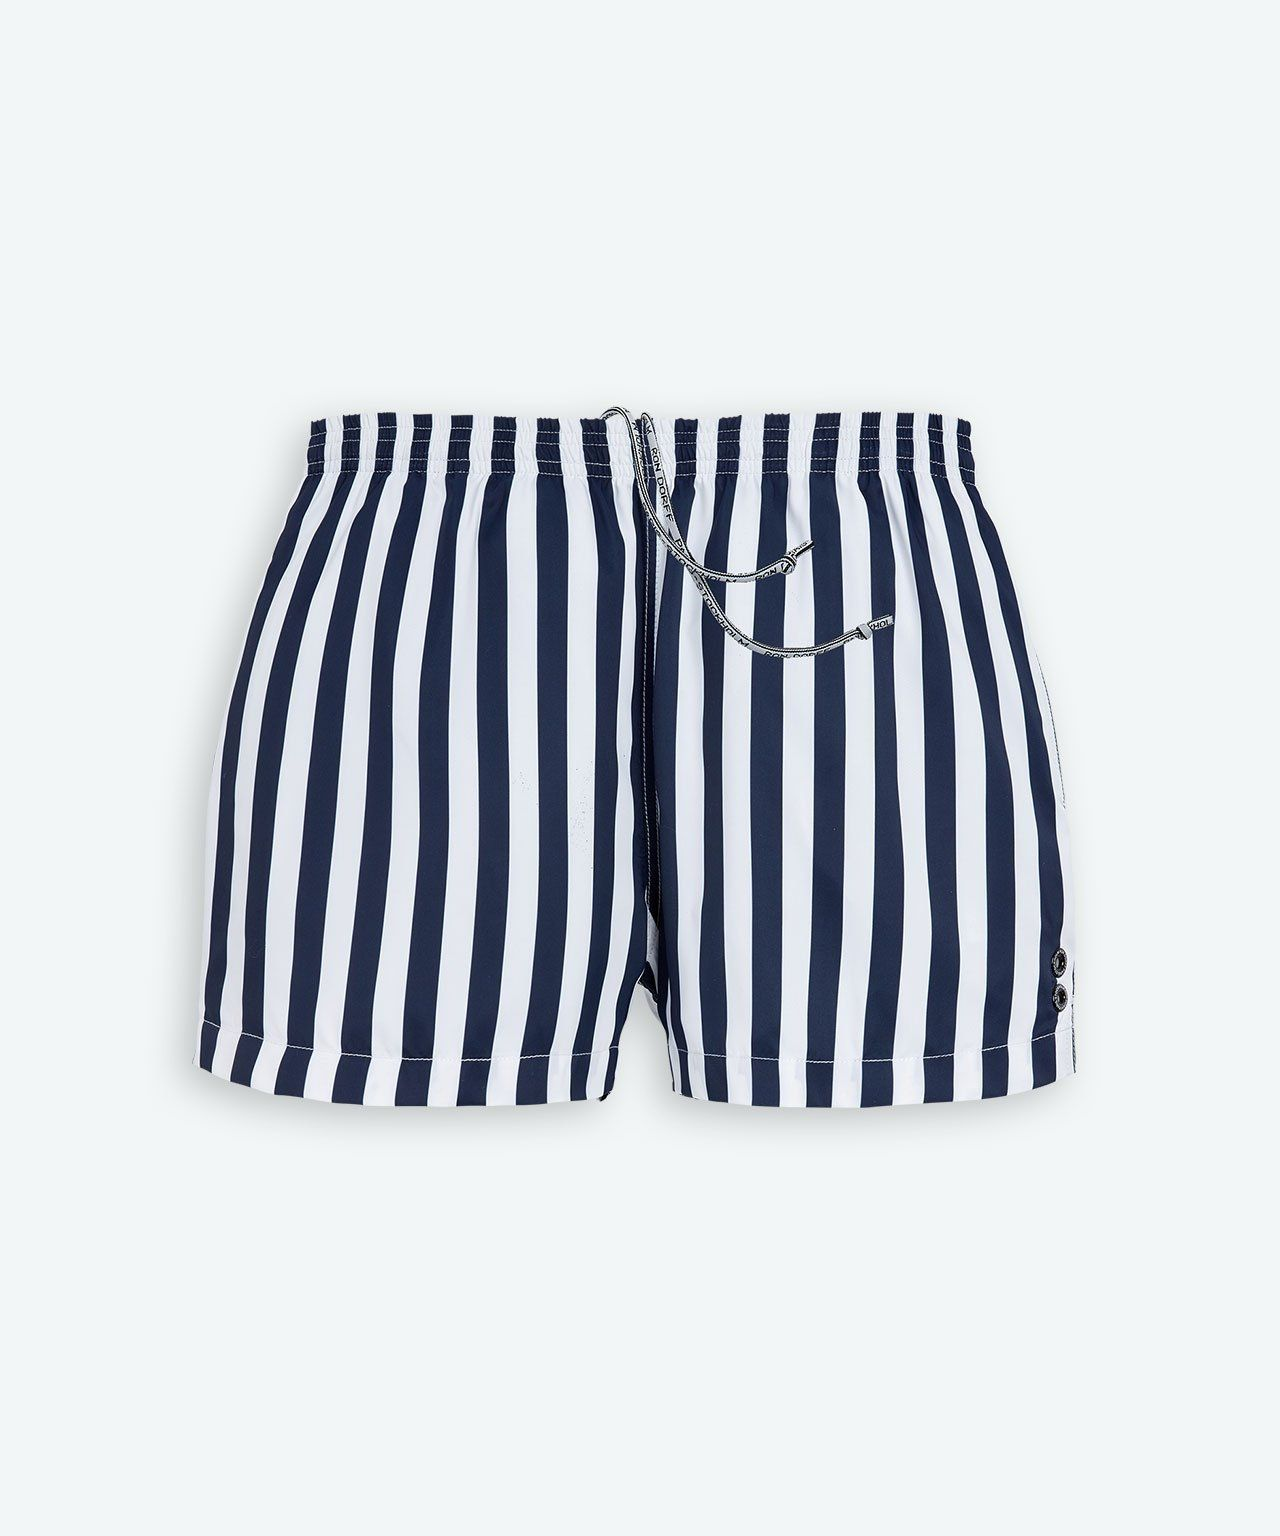 e3789c76d22d3 Swim Shorts Vertical Stripes | My Style | Swim shorts, Vertical ...